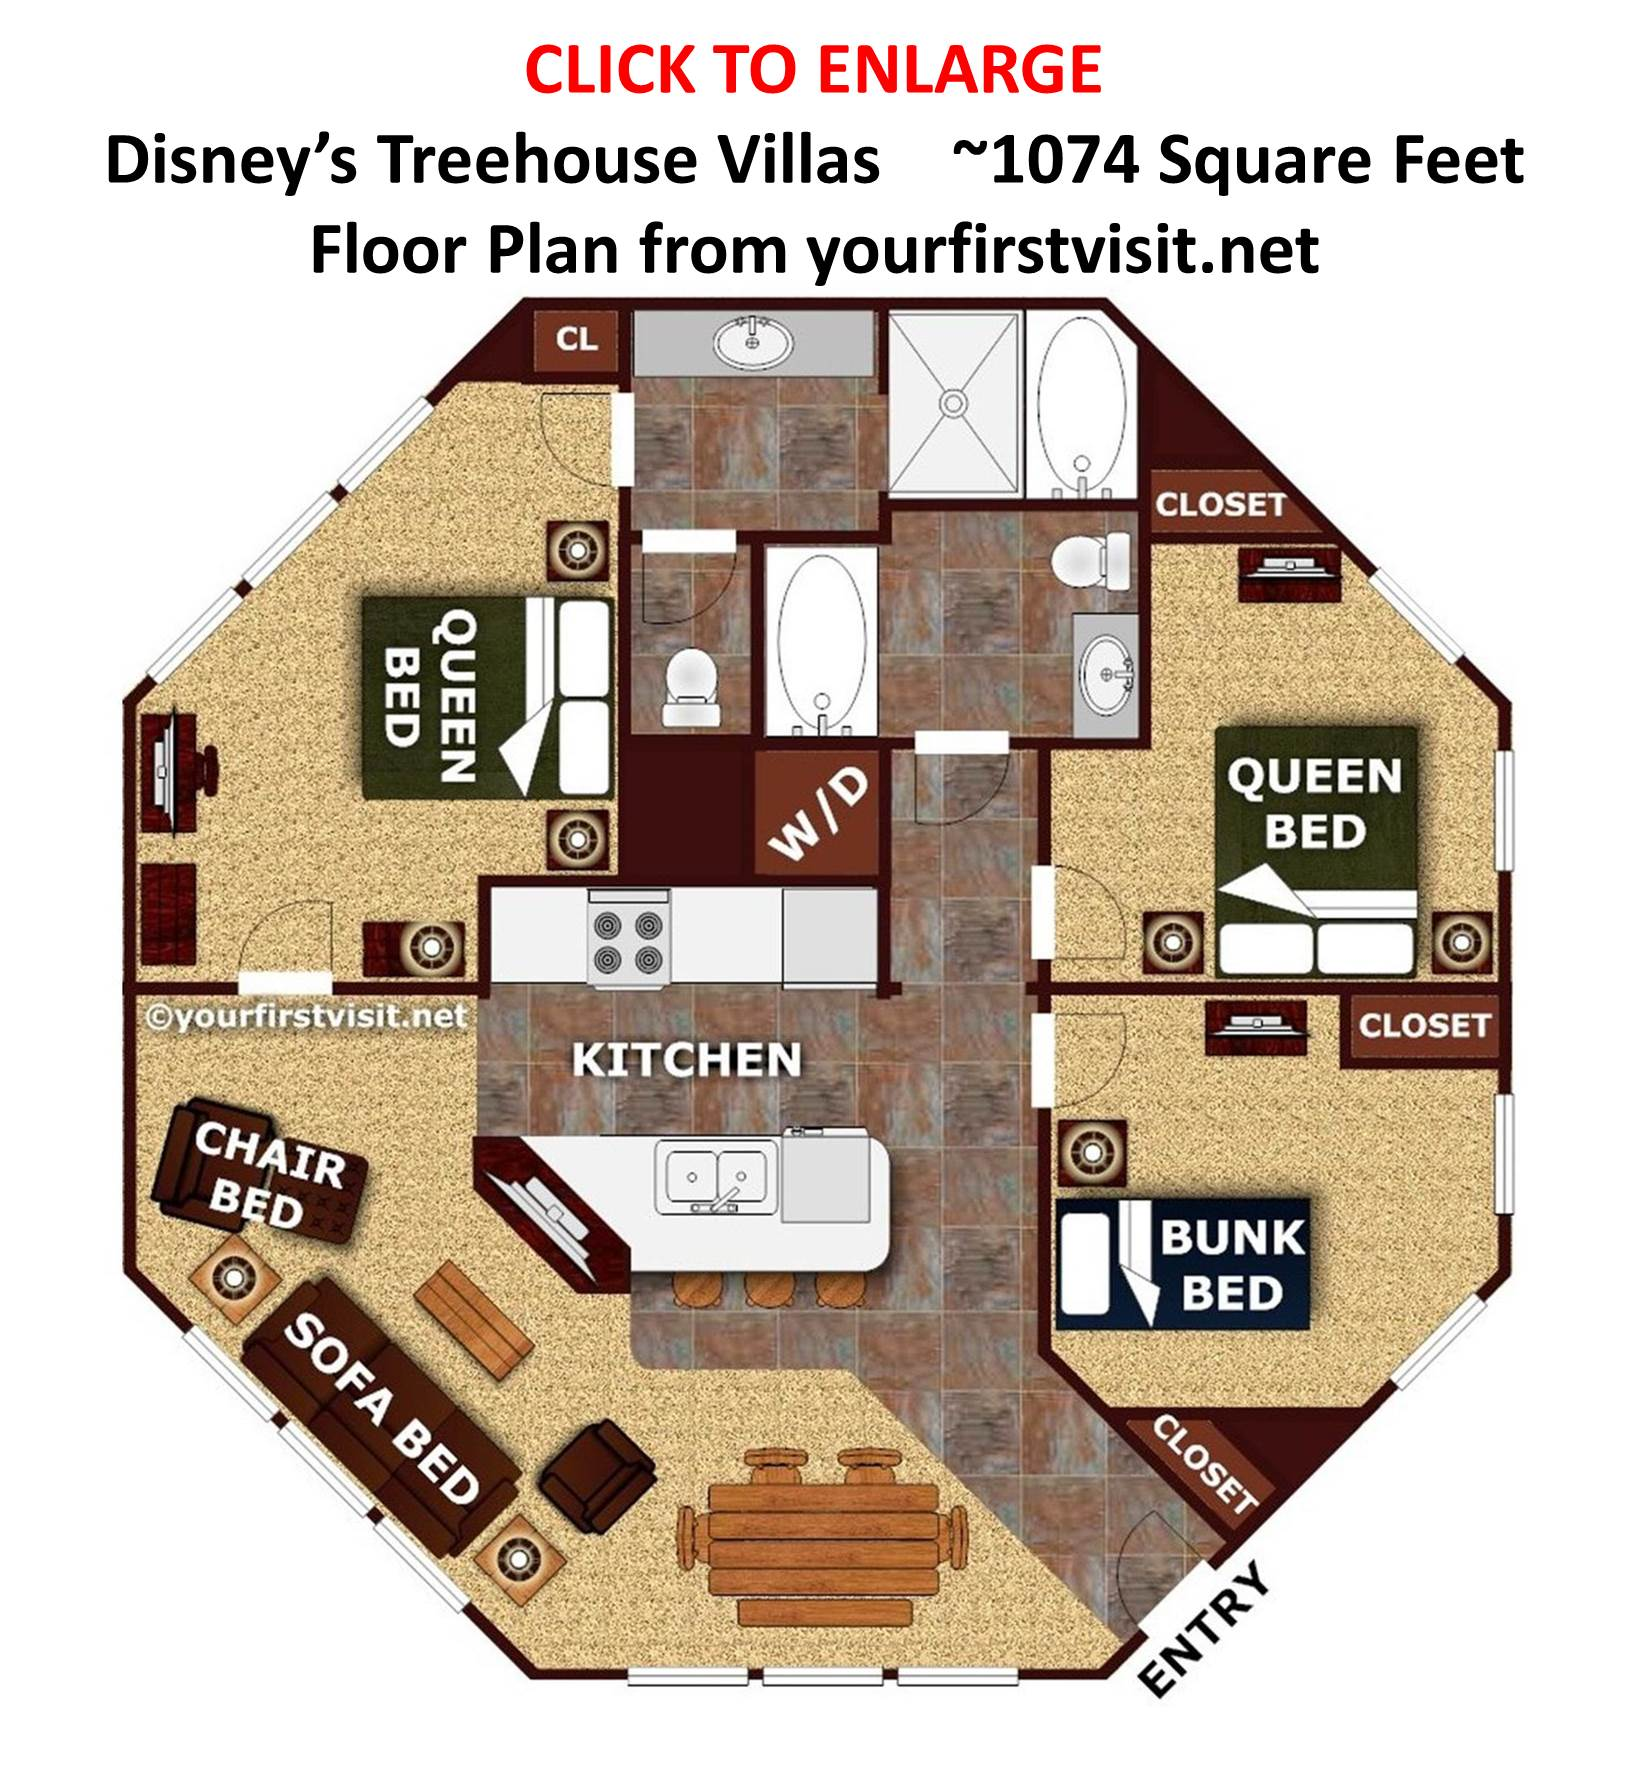 Sleeping Space Options And Bed Types At Walt Disney World Resort Hotels on Disney Saratoga Springs 2 Bedroom Villa Plan